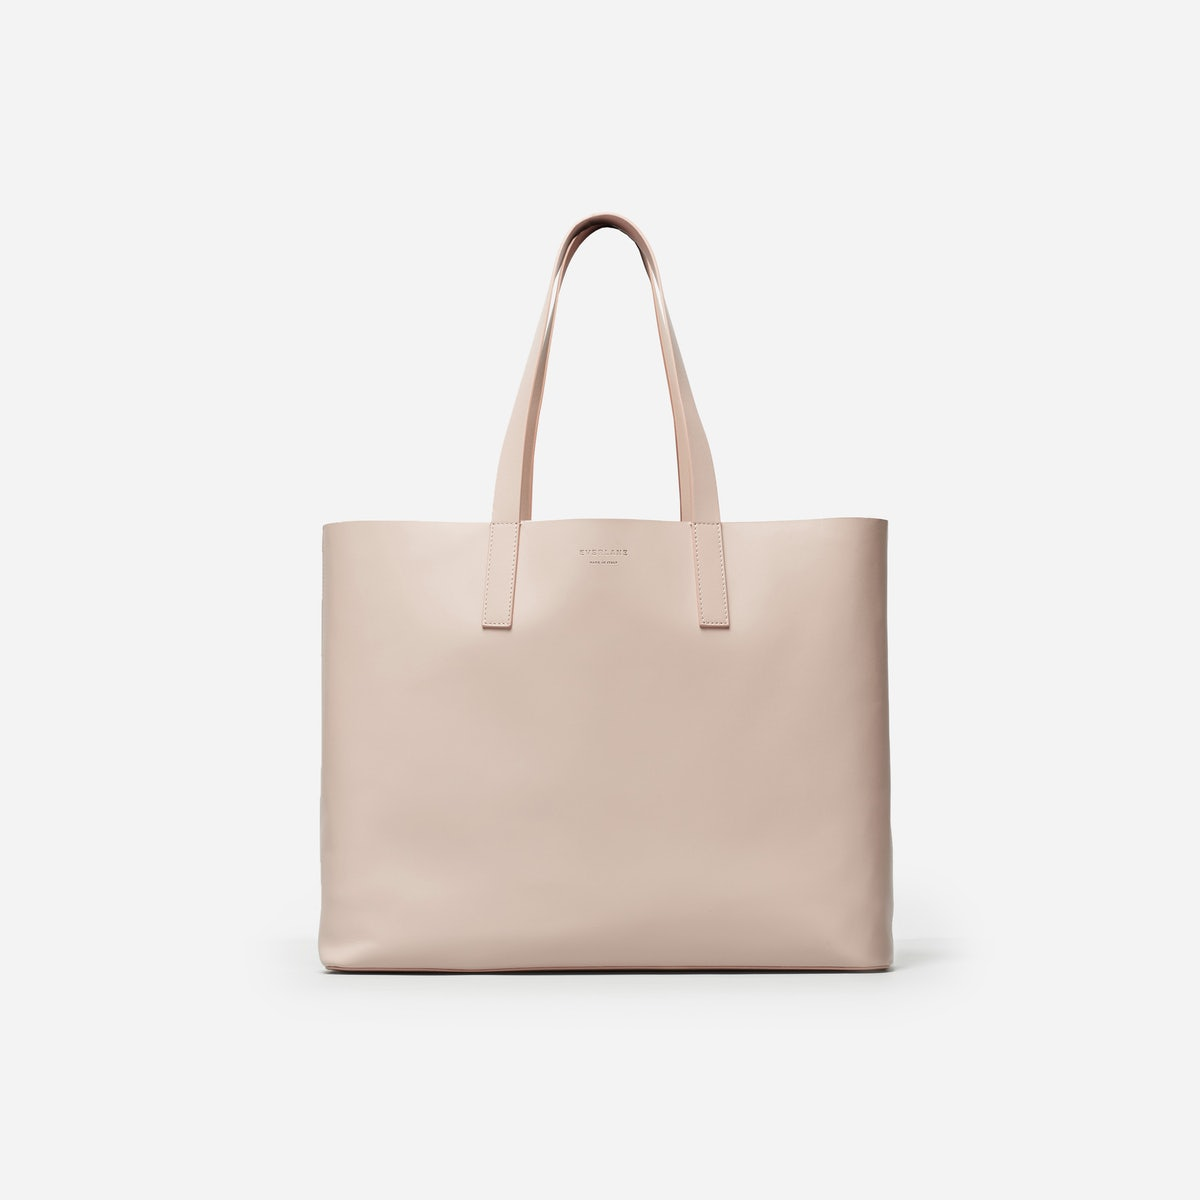 Everlane Leather Market Tote in blush